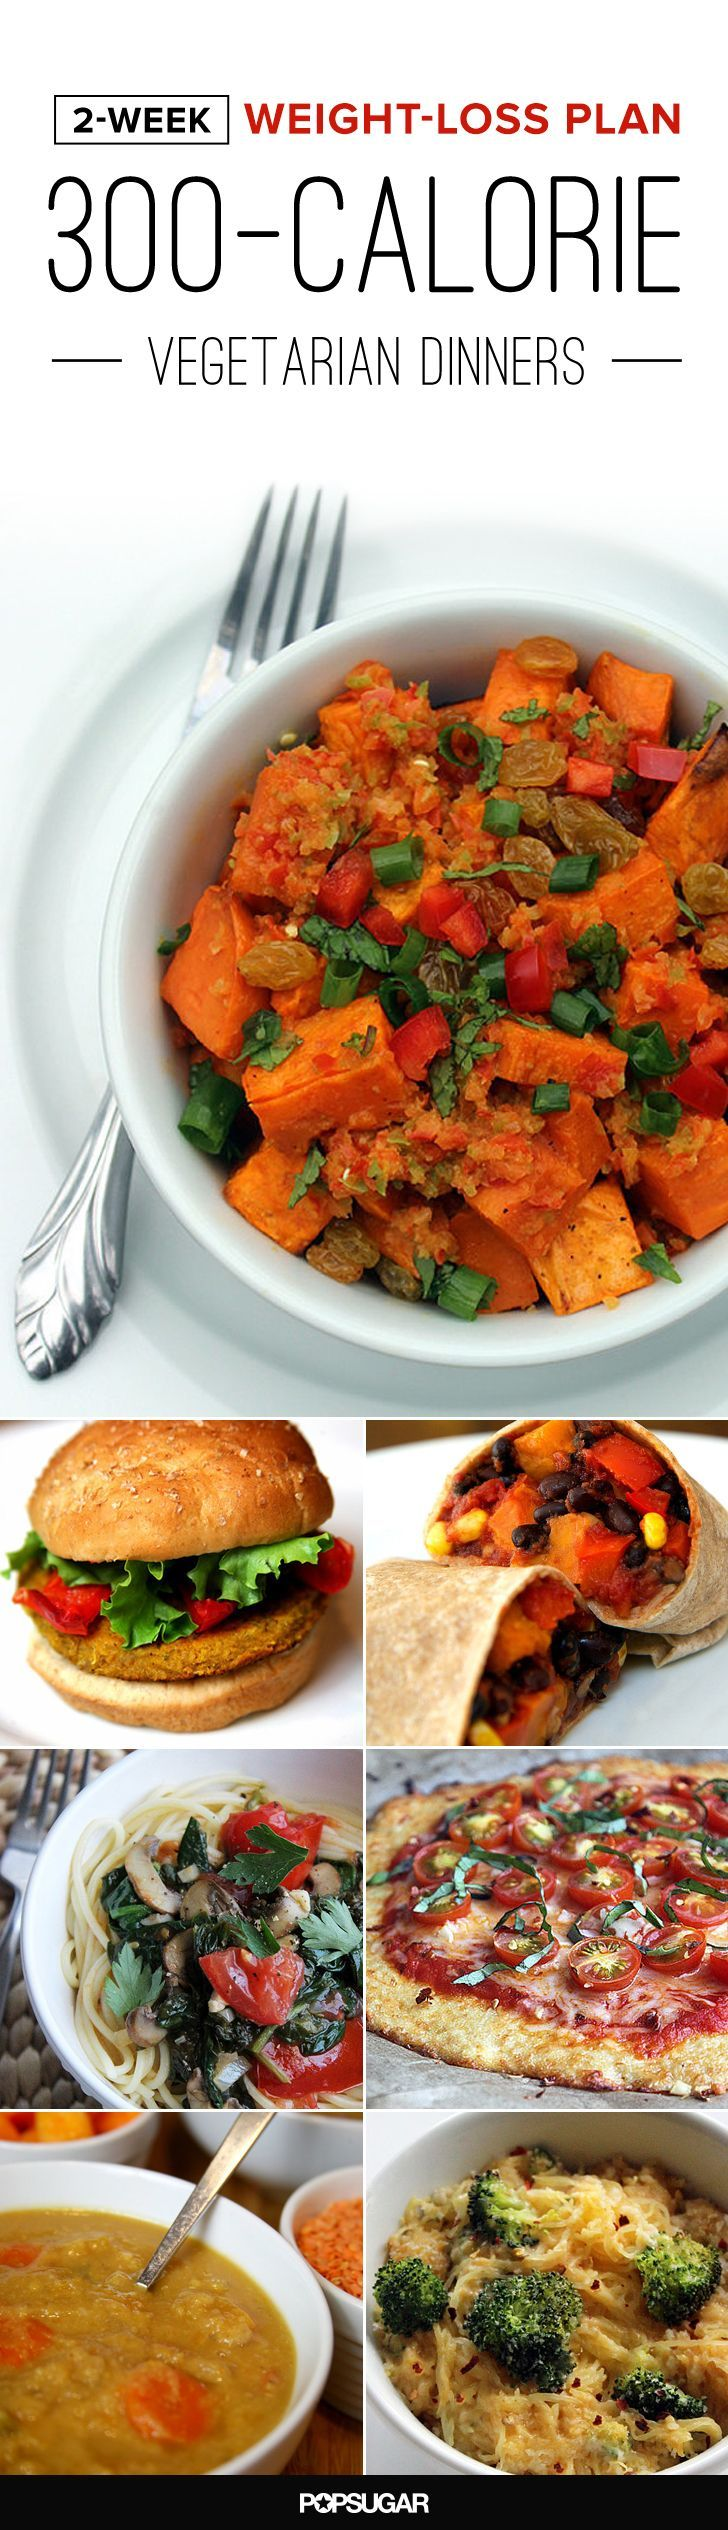 Low-fat vegetarian recipes easy